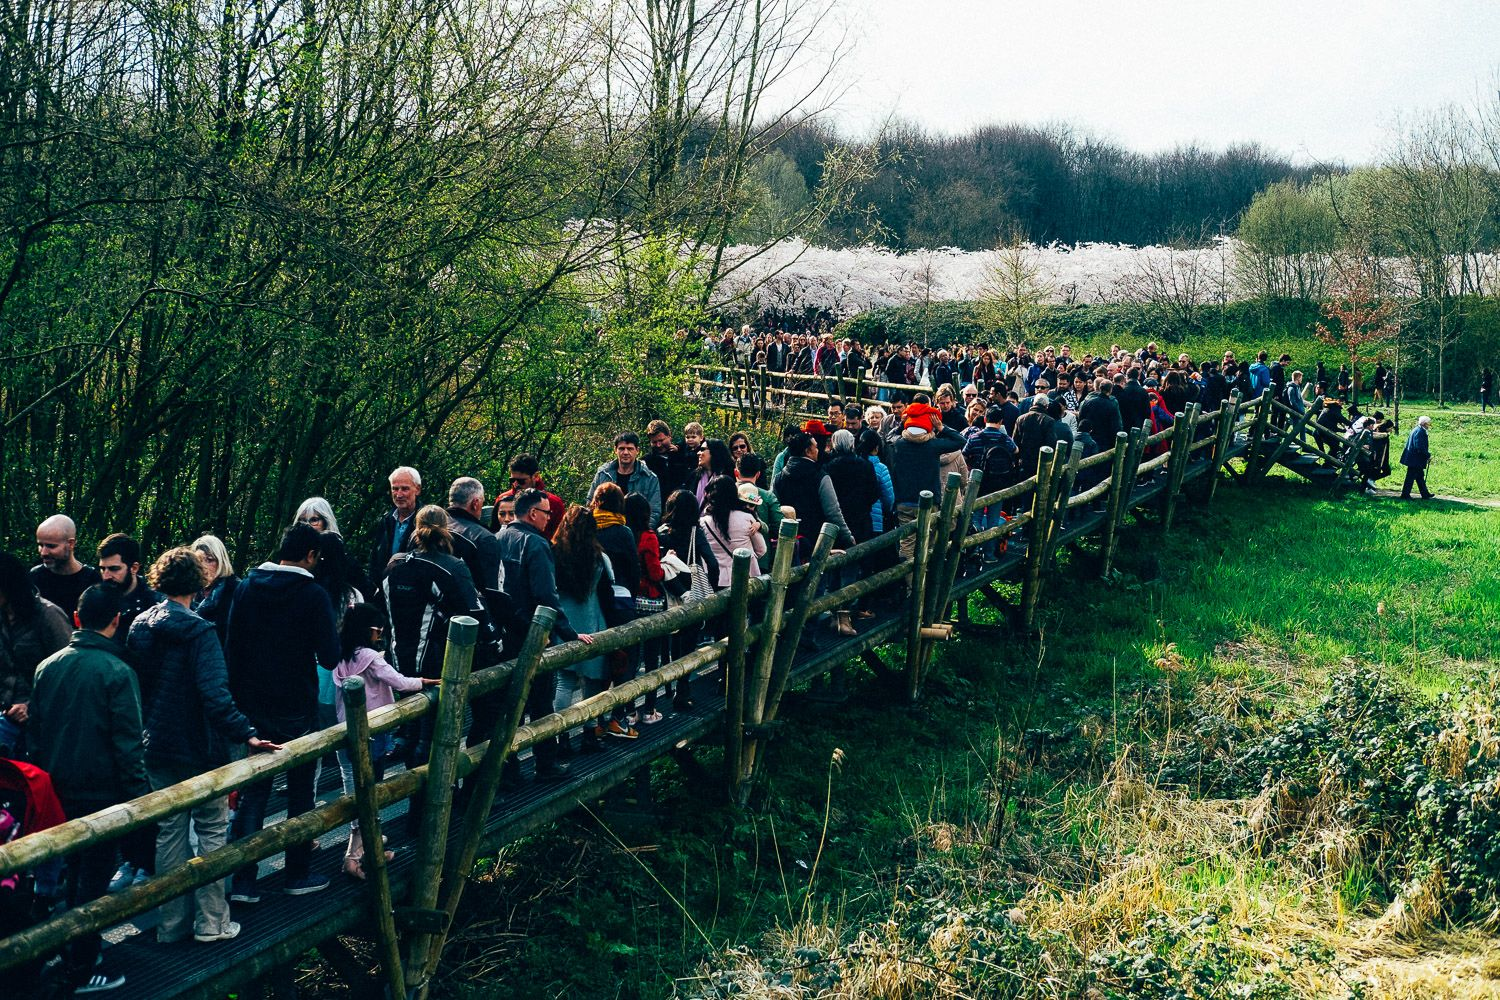 Crowd heading towards the cherry blossom park of Amsterdam Forest for Cherry Blossom Festival 2016.